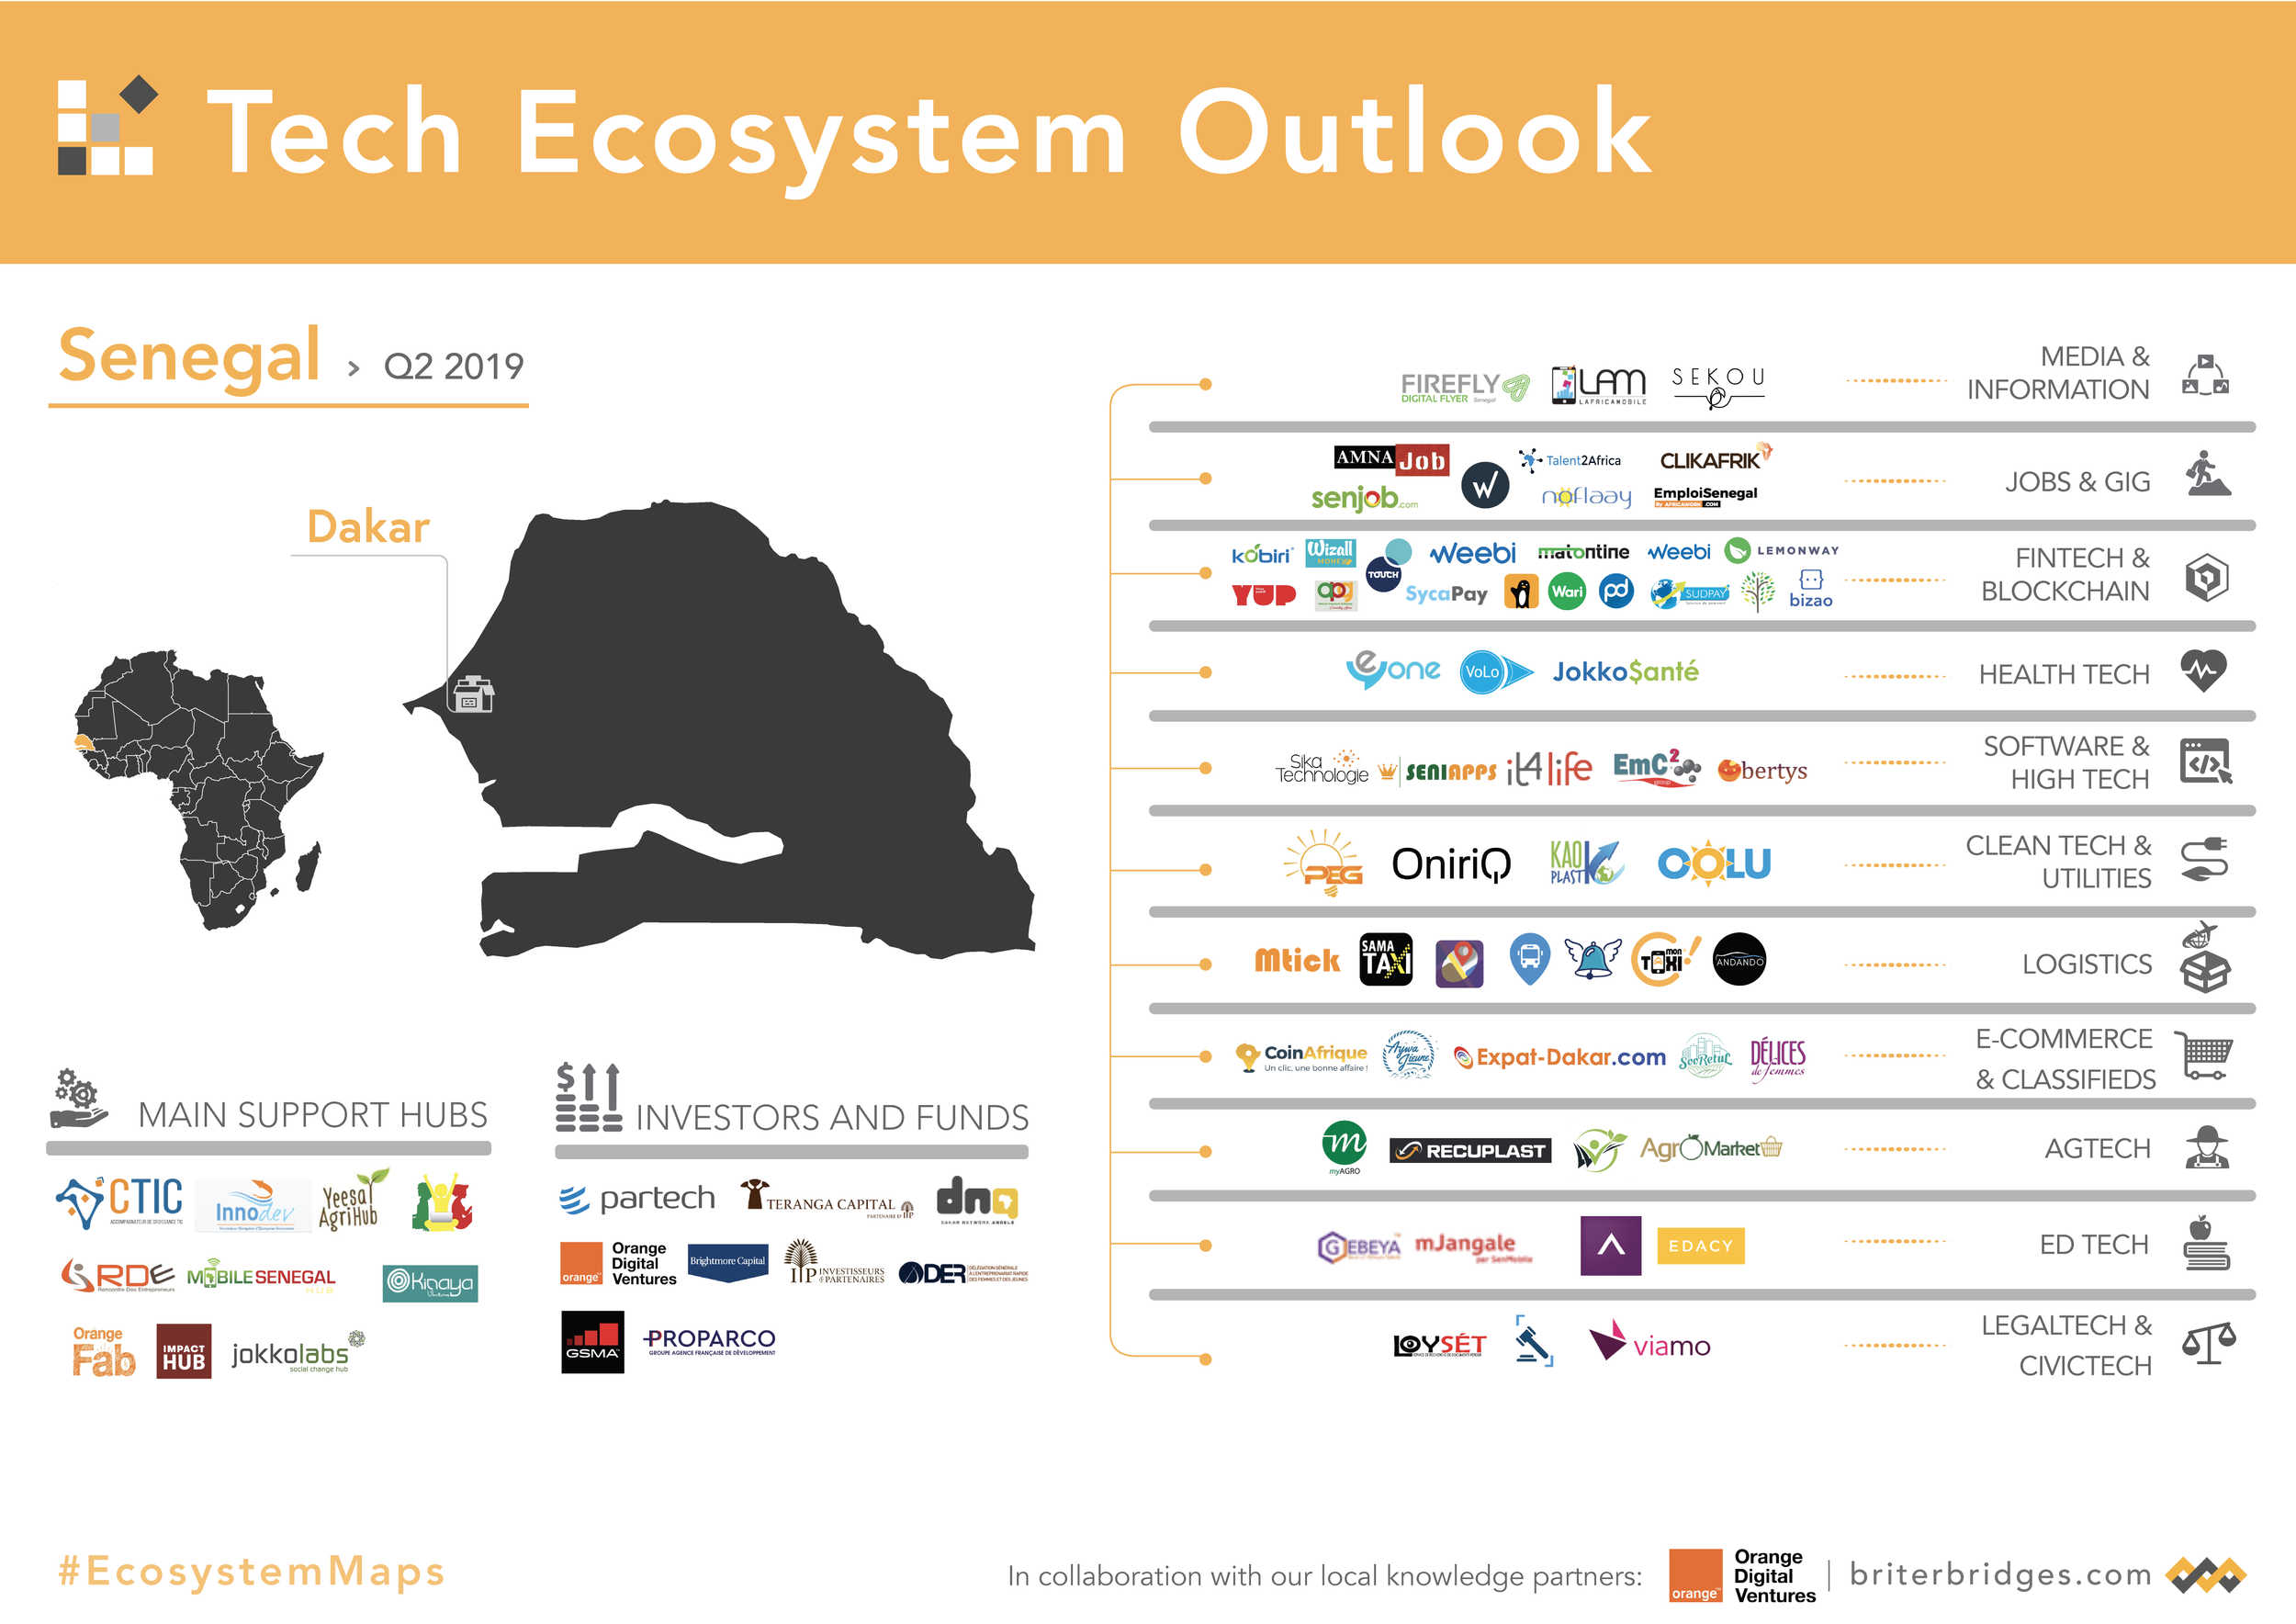 Senegal's Tech Ecosystem Map